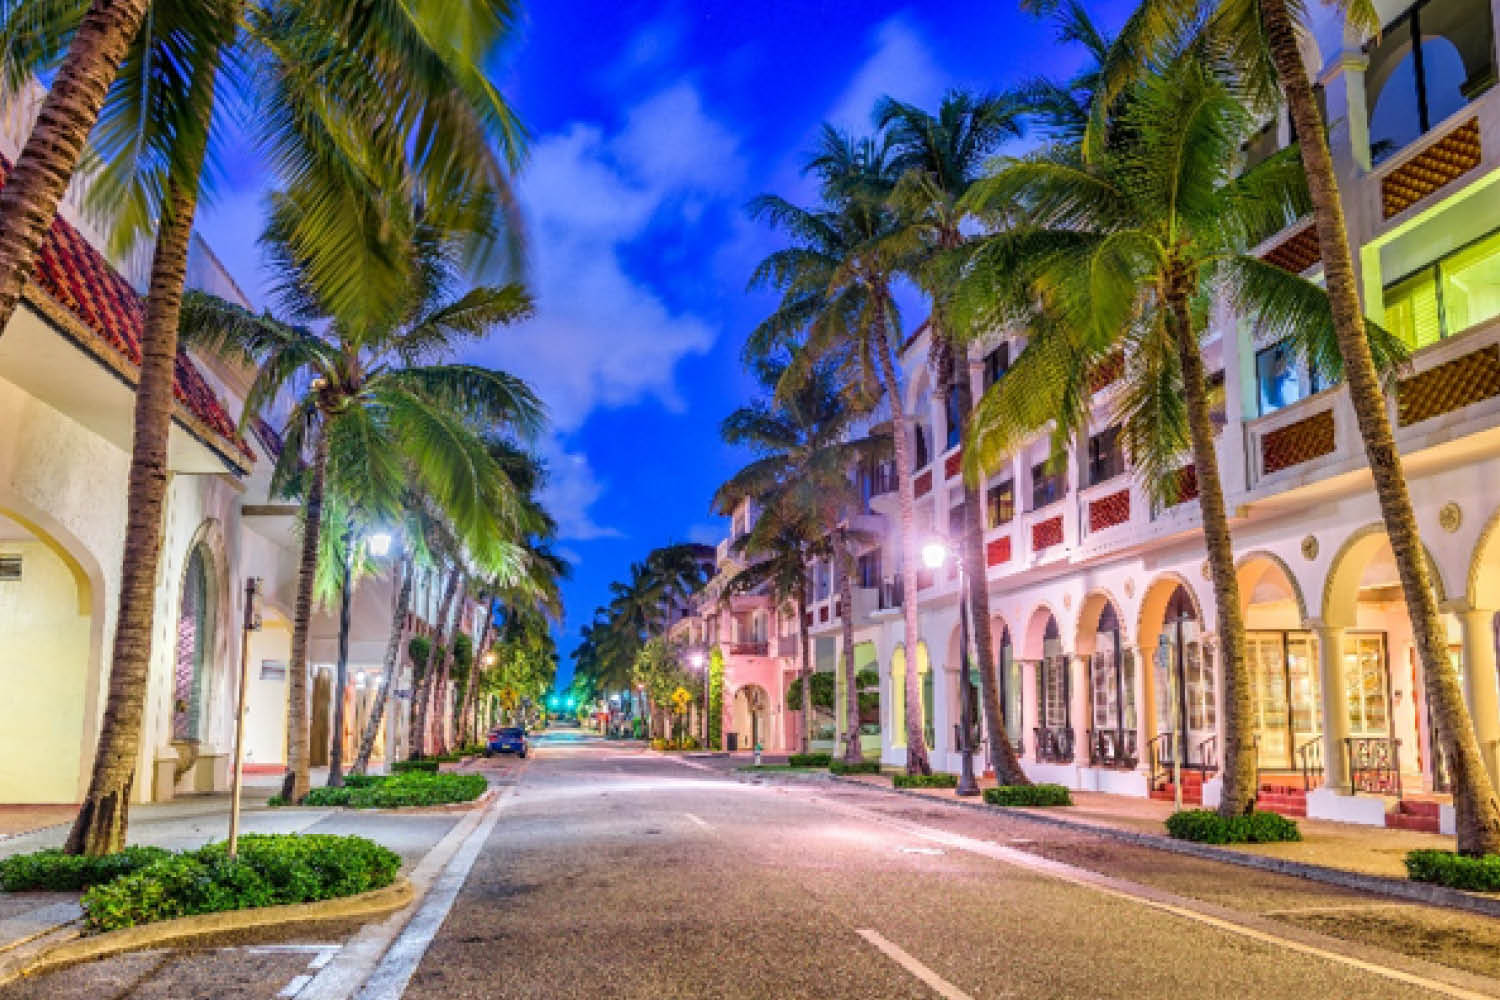 incentive travel destination palm beach